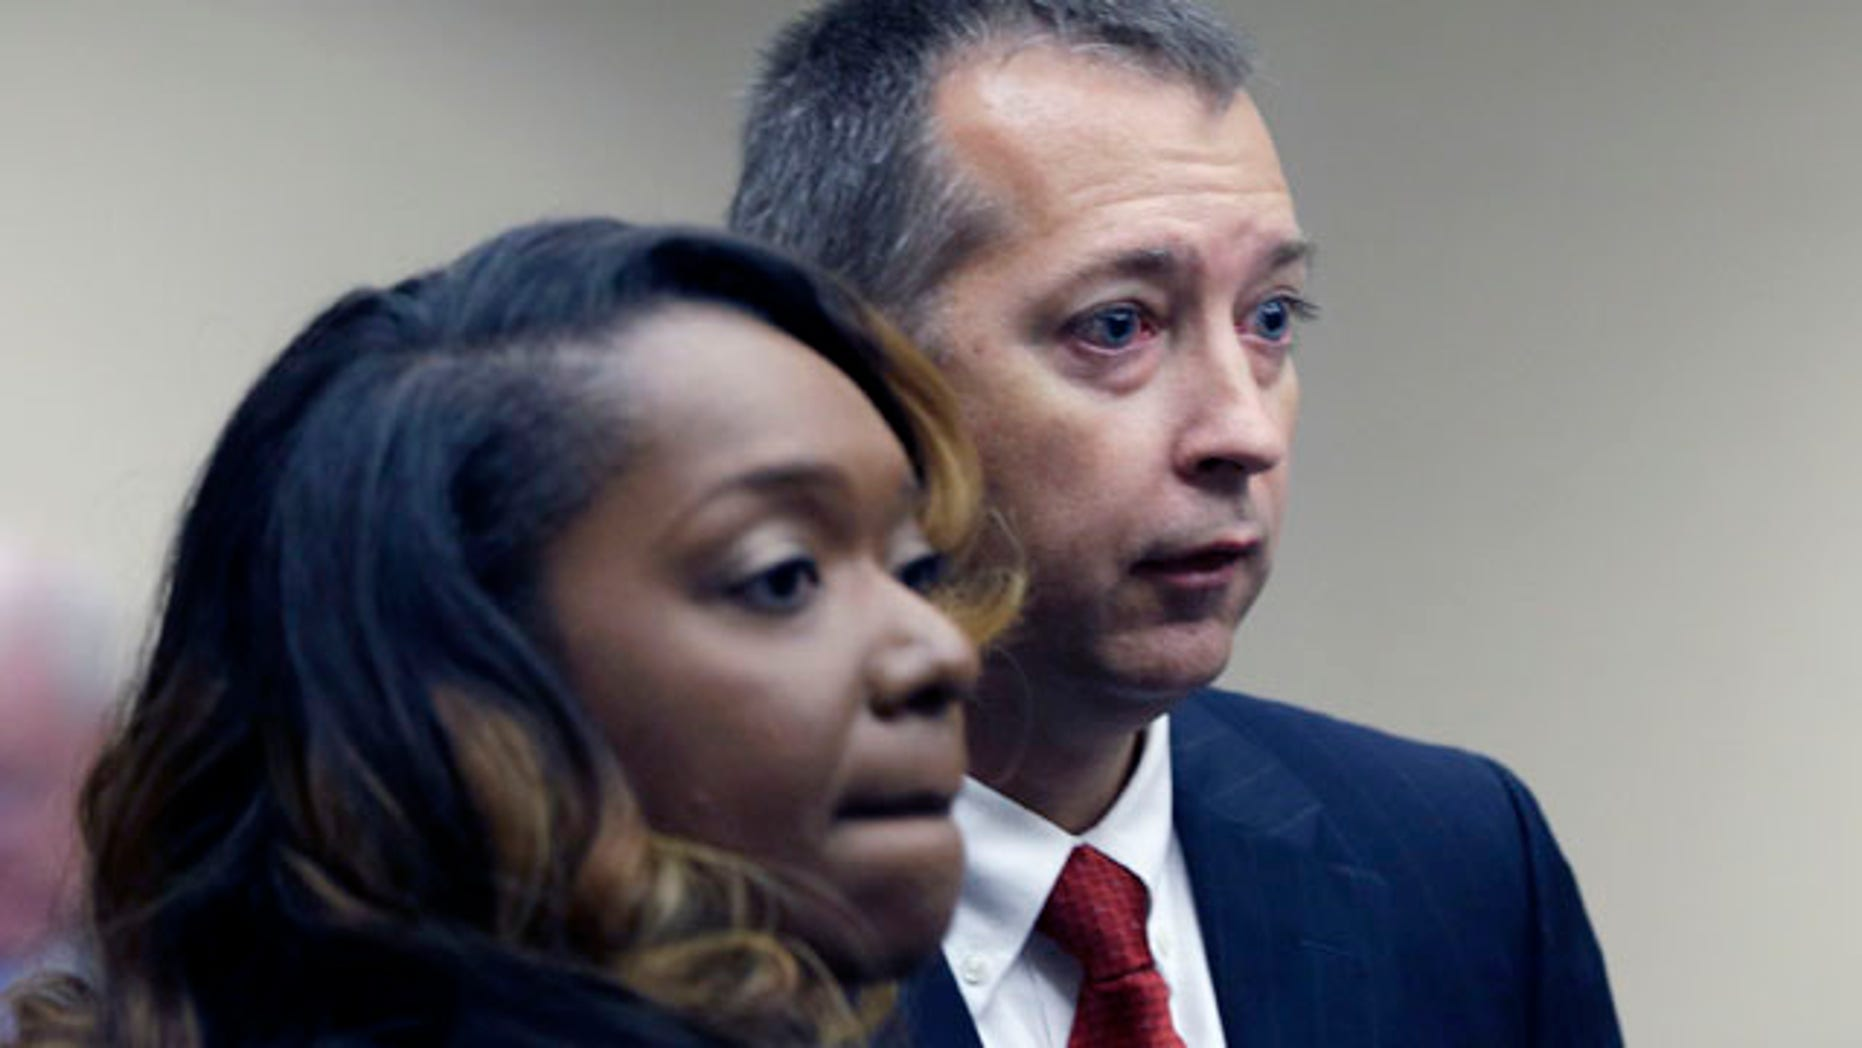 Aug. 14, 2013: Senior Assistant Arkansas Attorney General Warren Readnour, right, and Assistant AG Ka Tina Hodge appear before a meeting of the Arkansas Board of Private Investigators and Private Security Agencies in Little Rock, Ark.